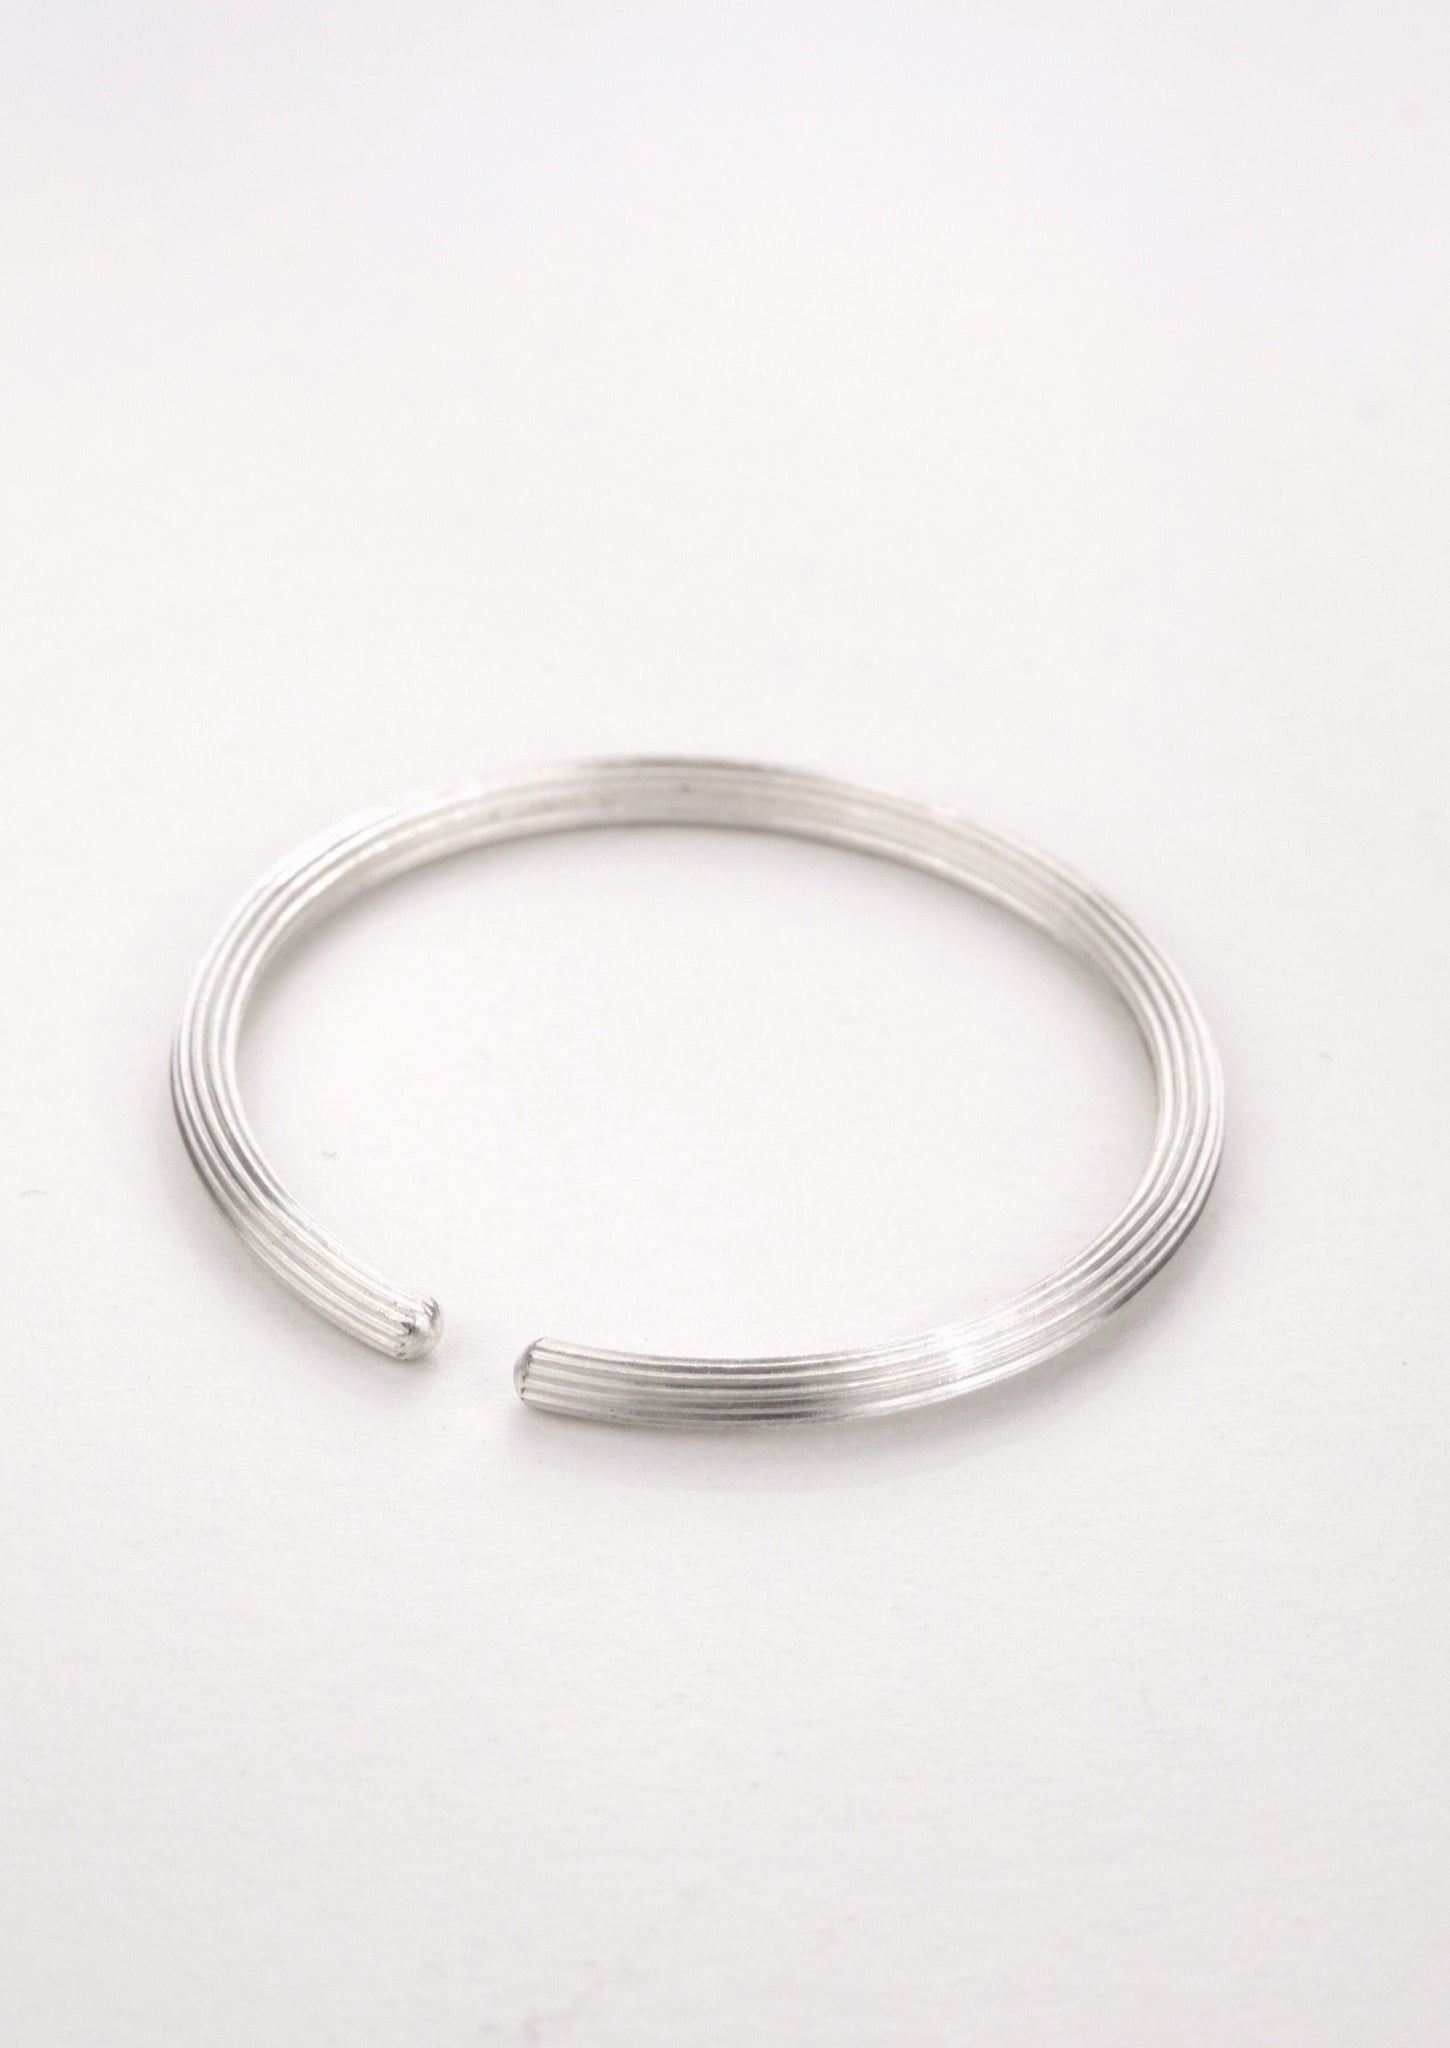 'BASIC NEEDS' Ear cuff, Fairtrade sterling silver